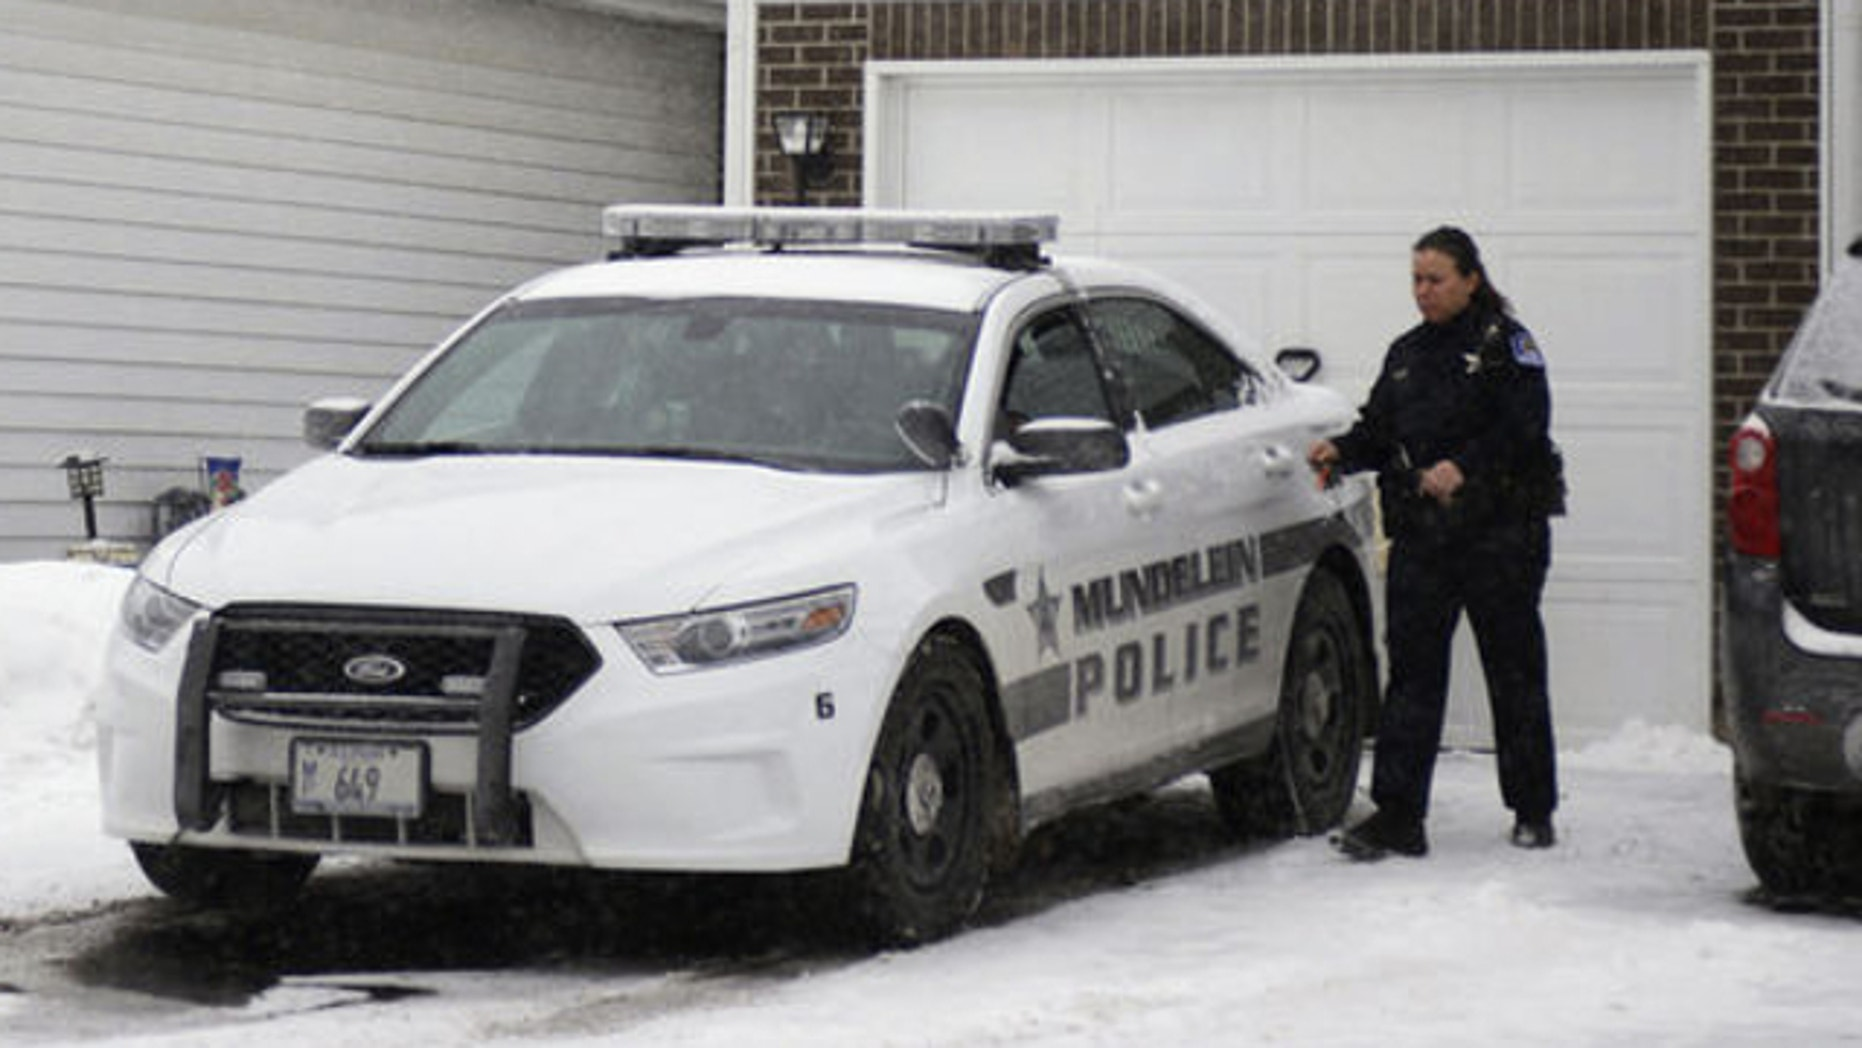 Jan. 22, 2014: A police officer is seen outside a home in Mundelein, Ill., where an 11-year-old girl was stabbed to death on Tuesday, Jan. 21. The Lake County State's Attorney's office said Wednesday they've approved a first-degree murder charge against a 14-year-old girl in the killing.